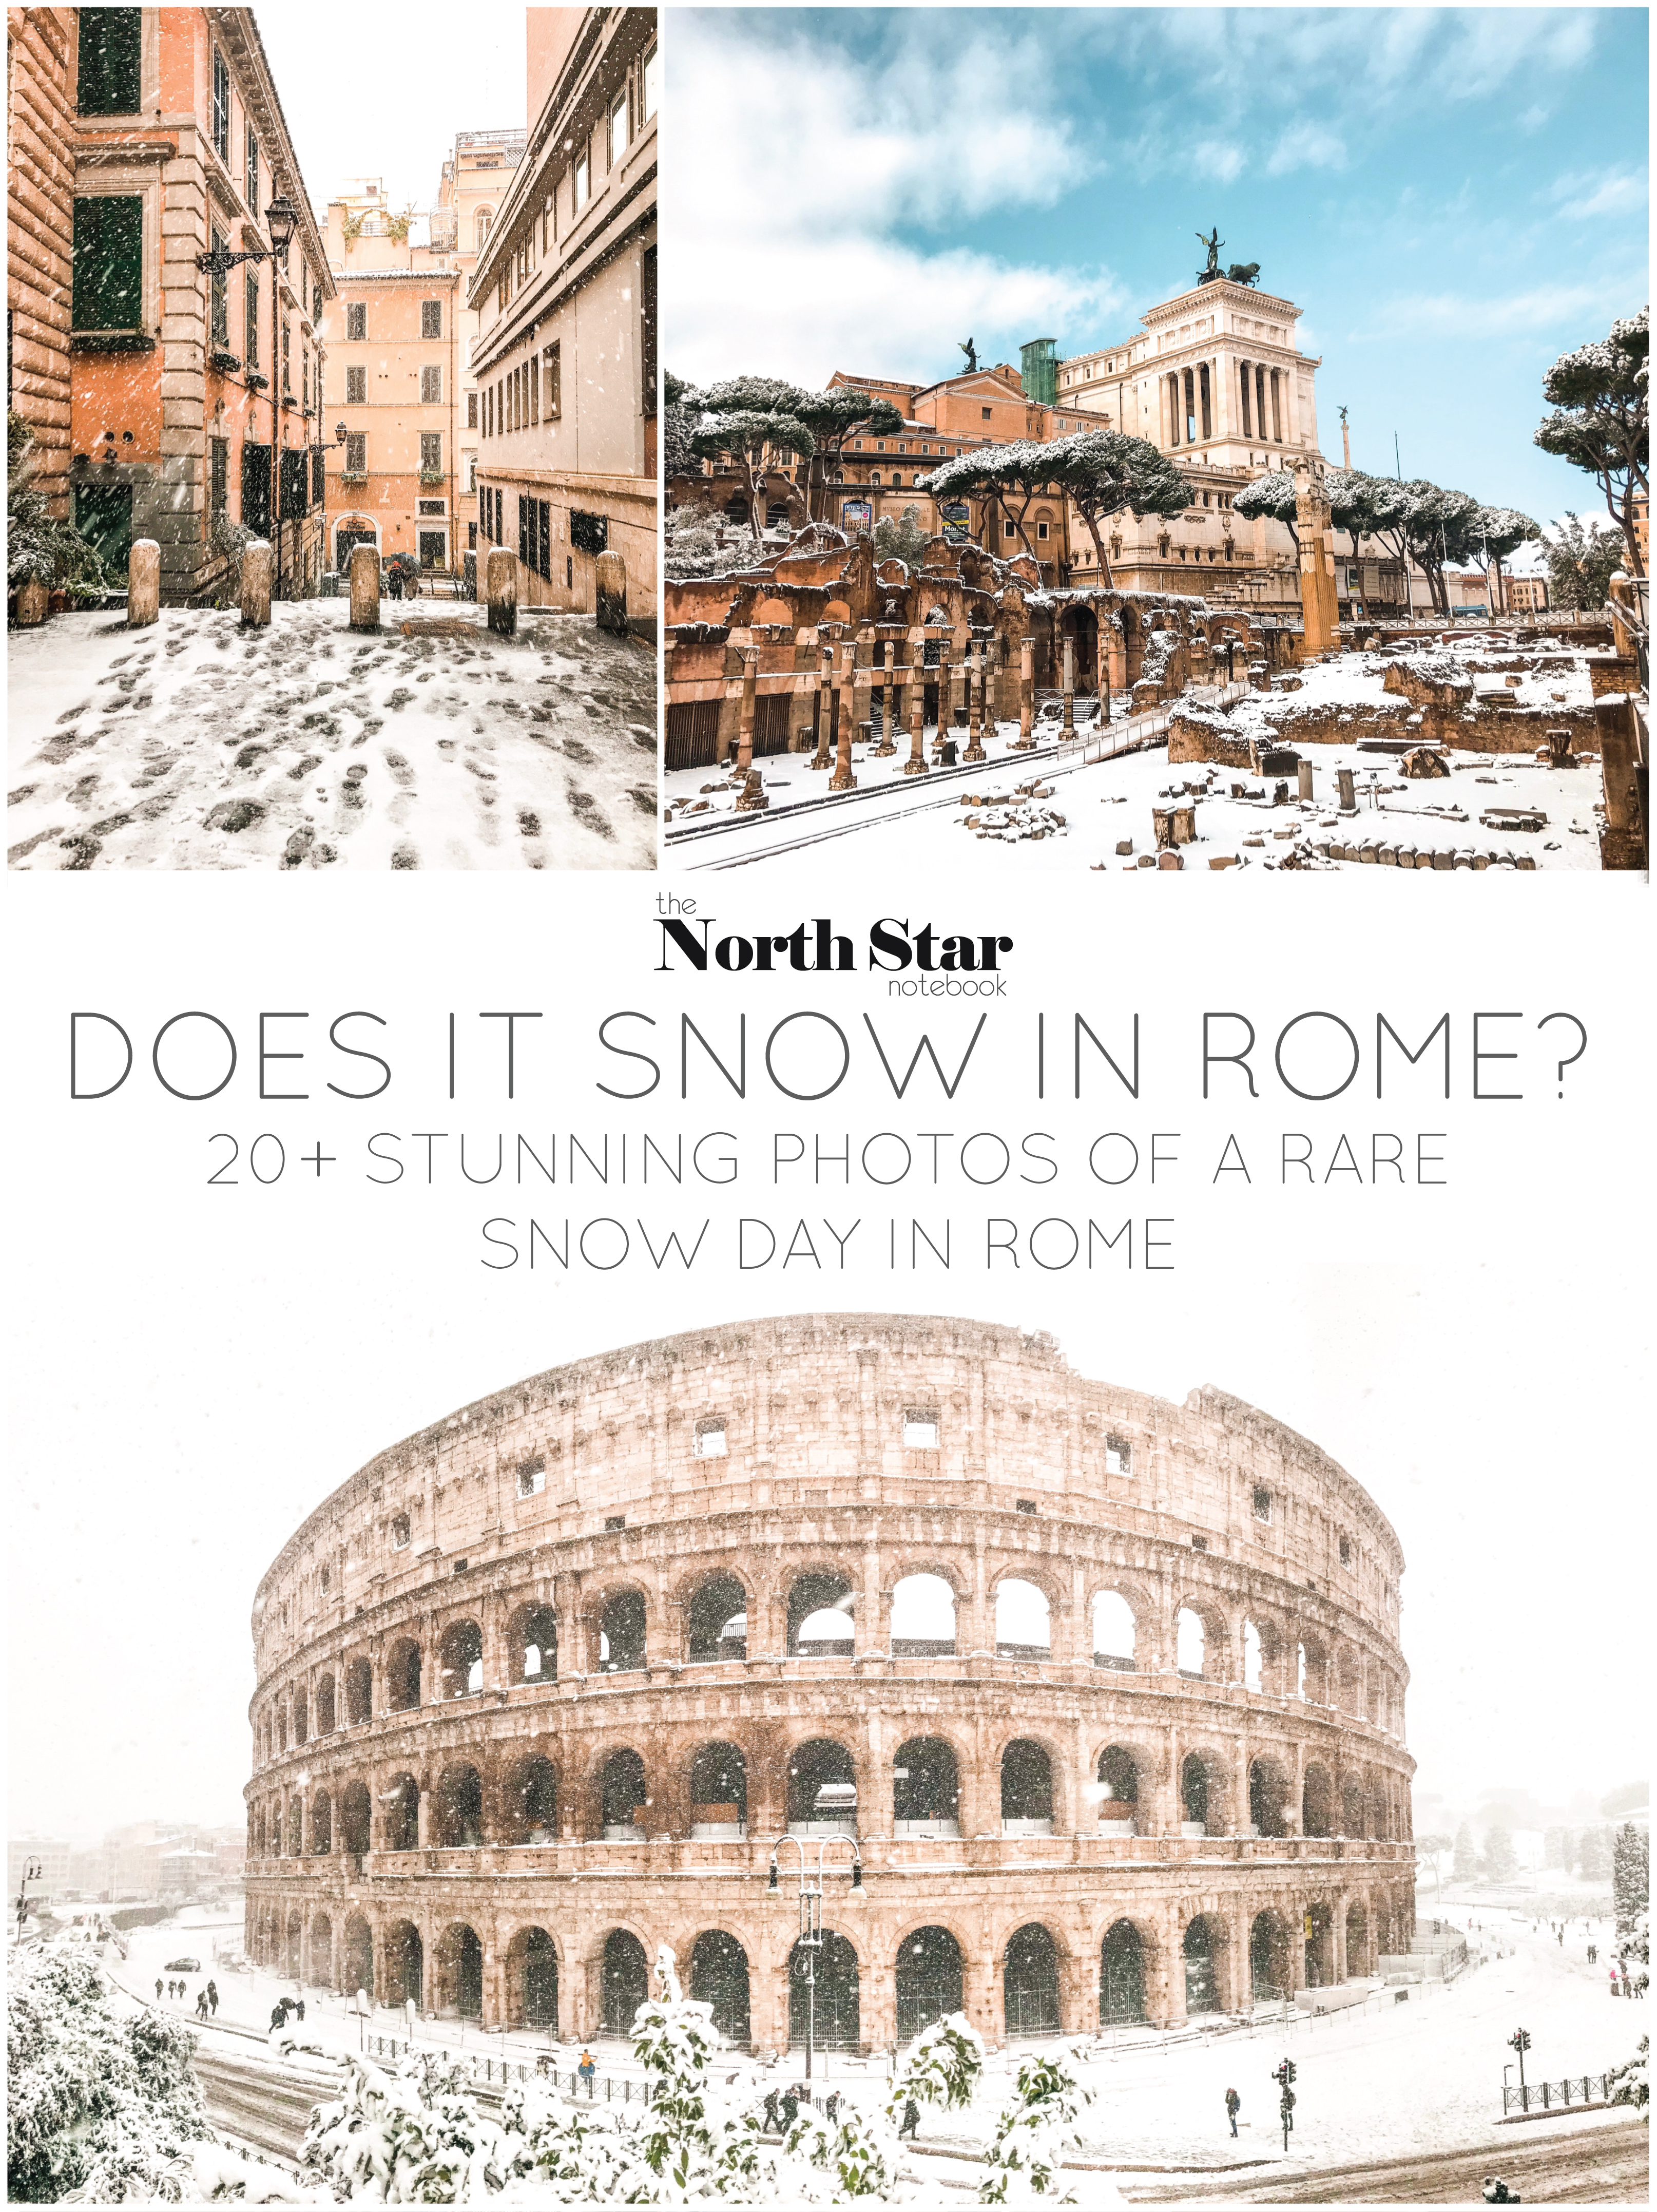 Does it Snow in Rome? 20+ stunning photos of a rare snow day in Rome